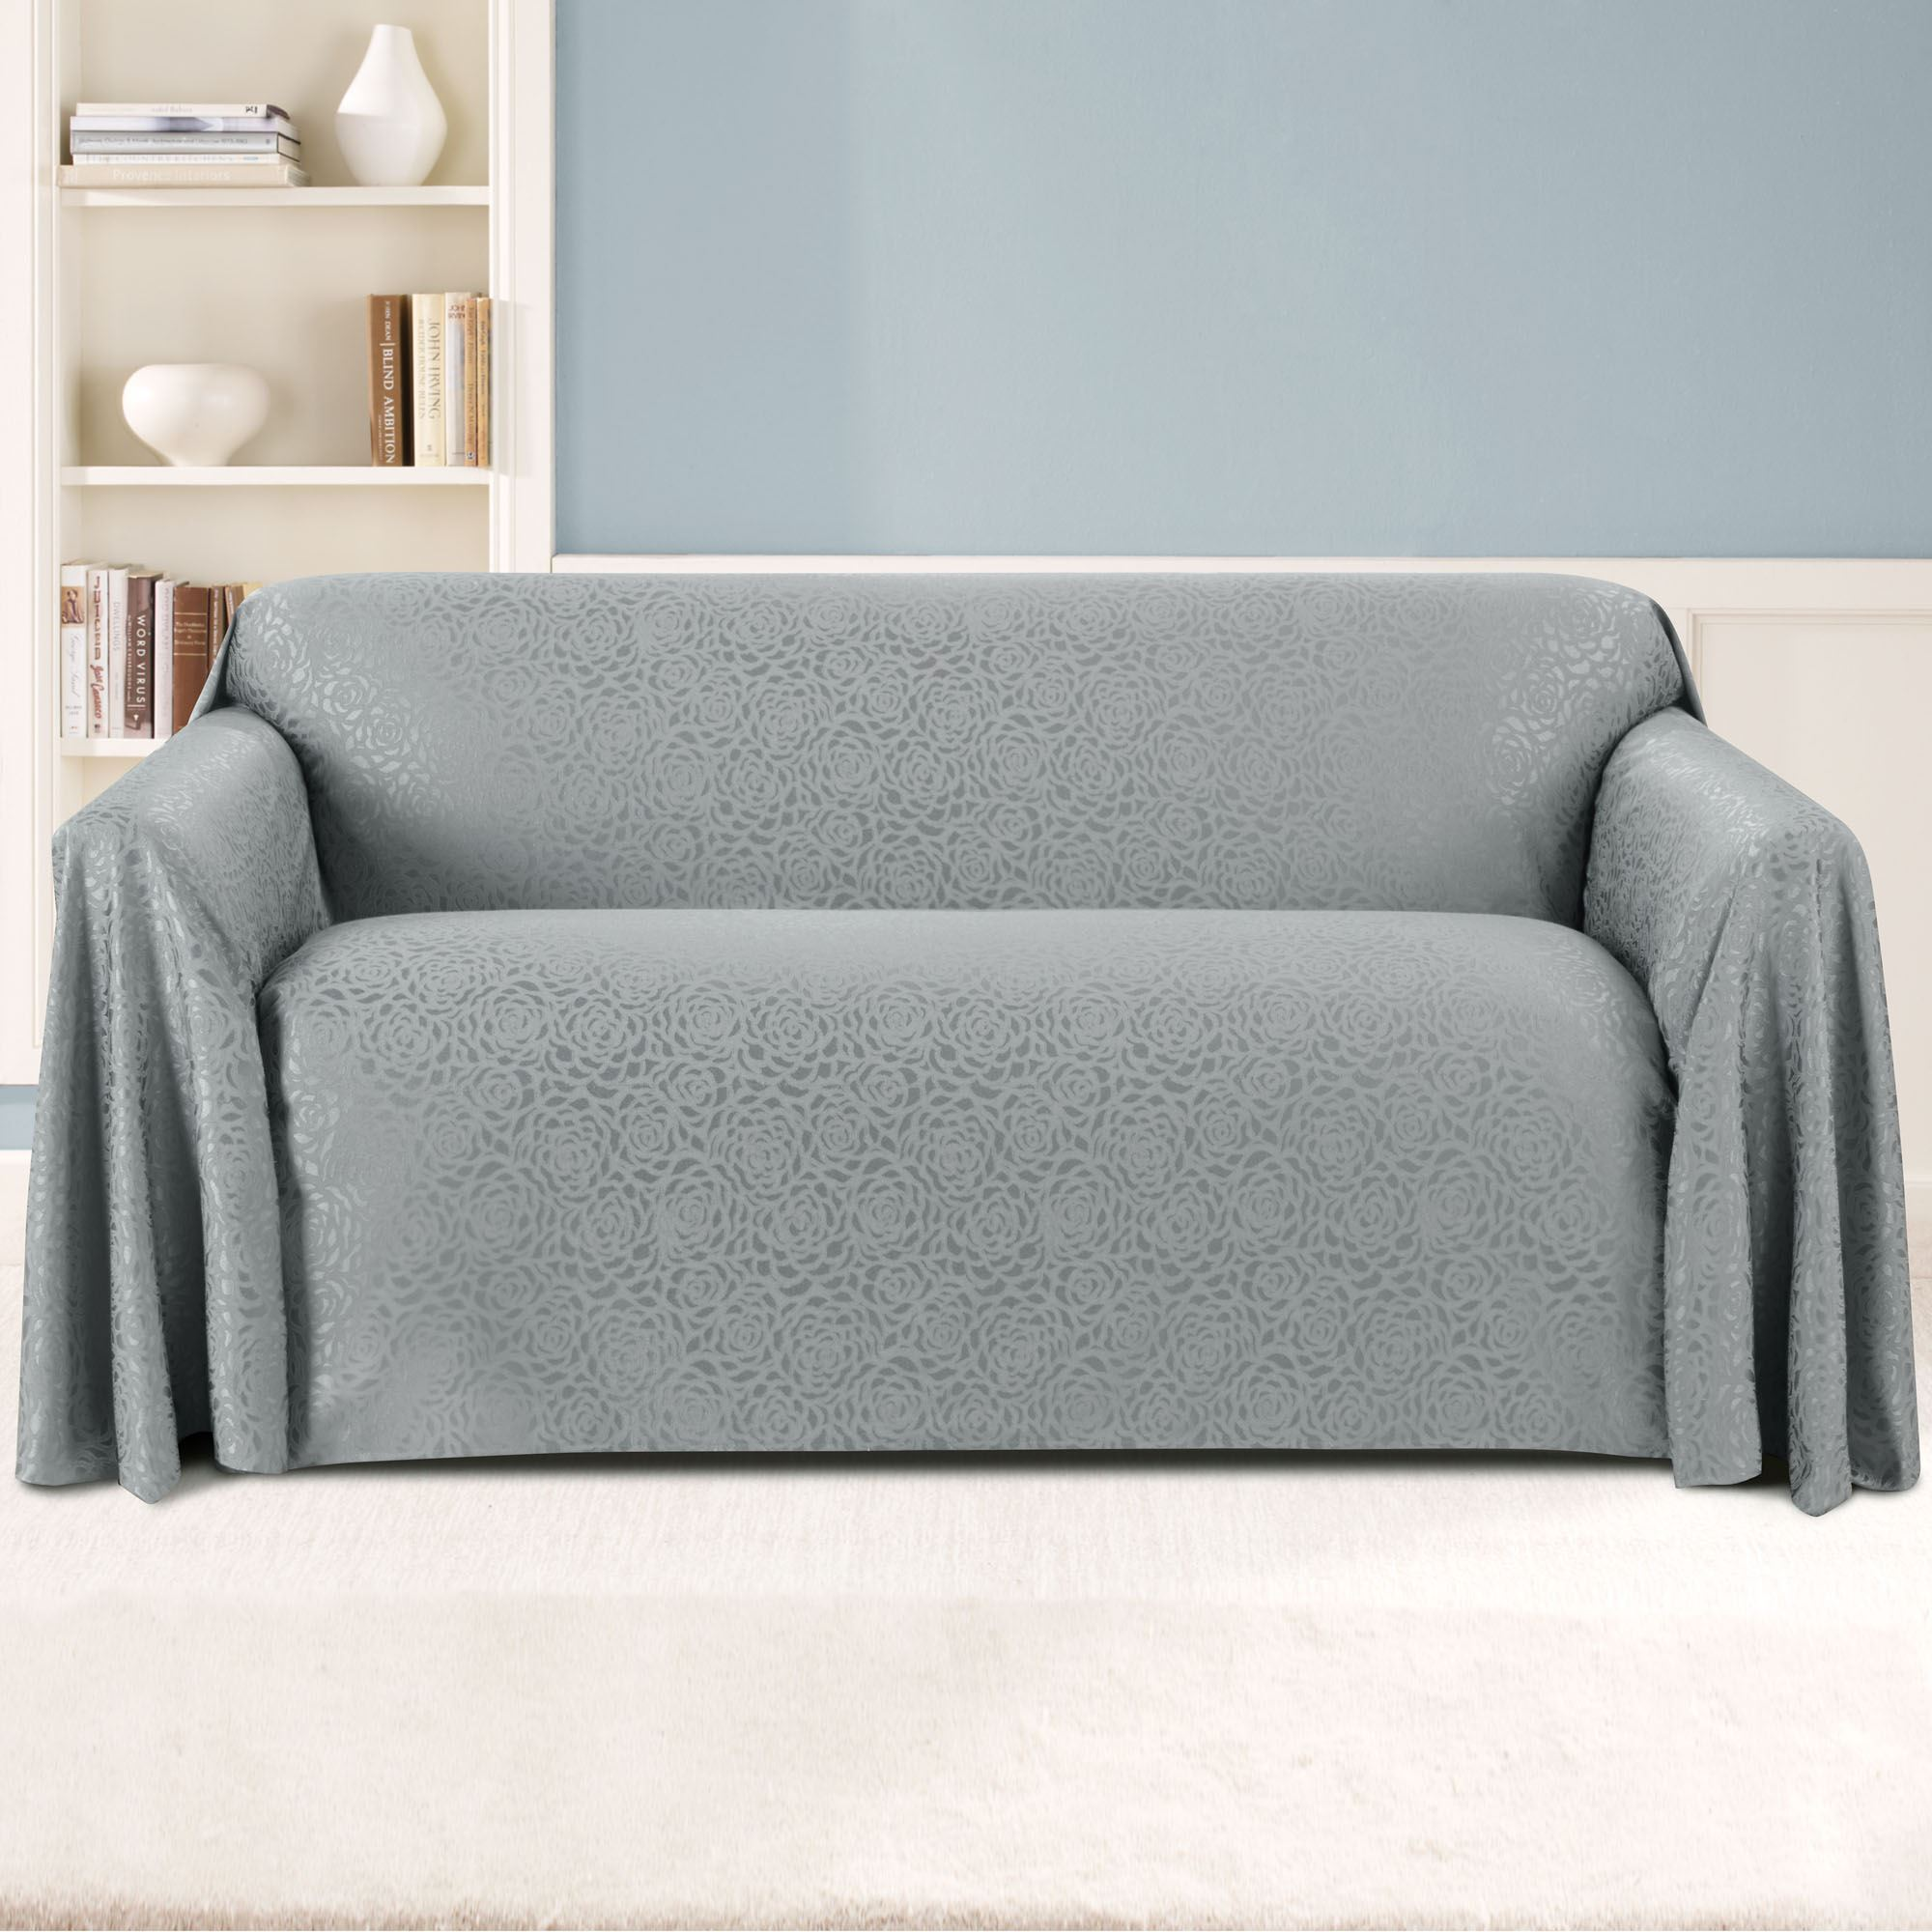 Rosanna Furniture Cover Sofa